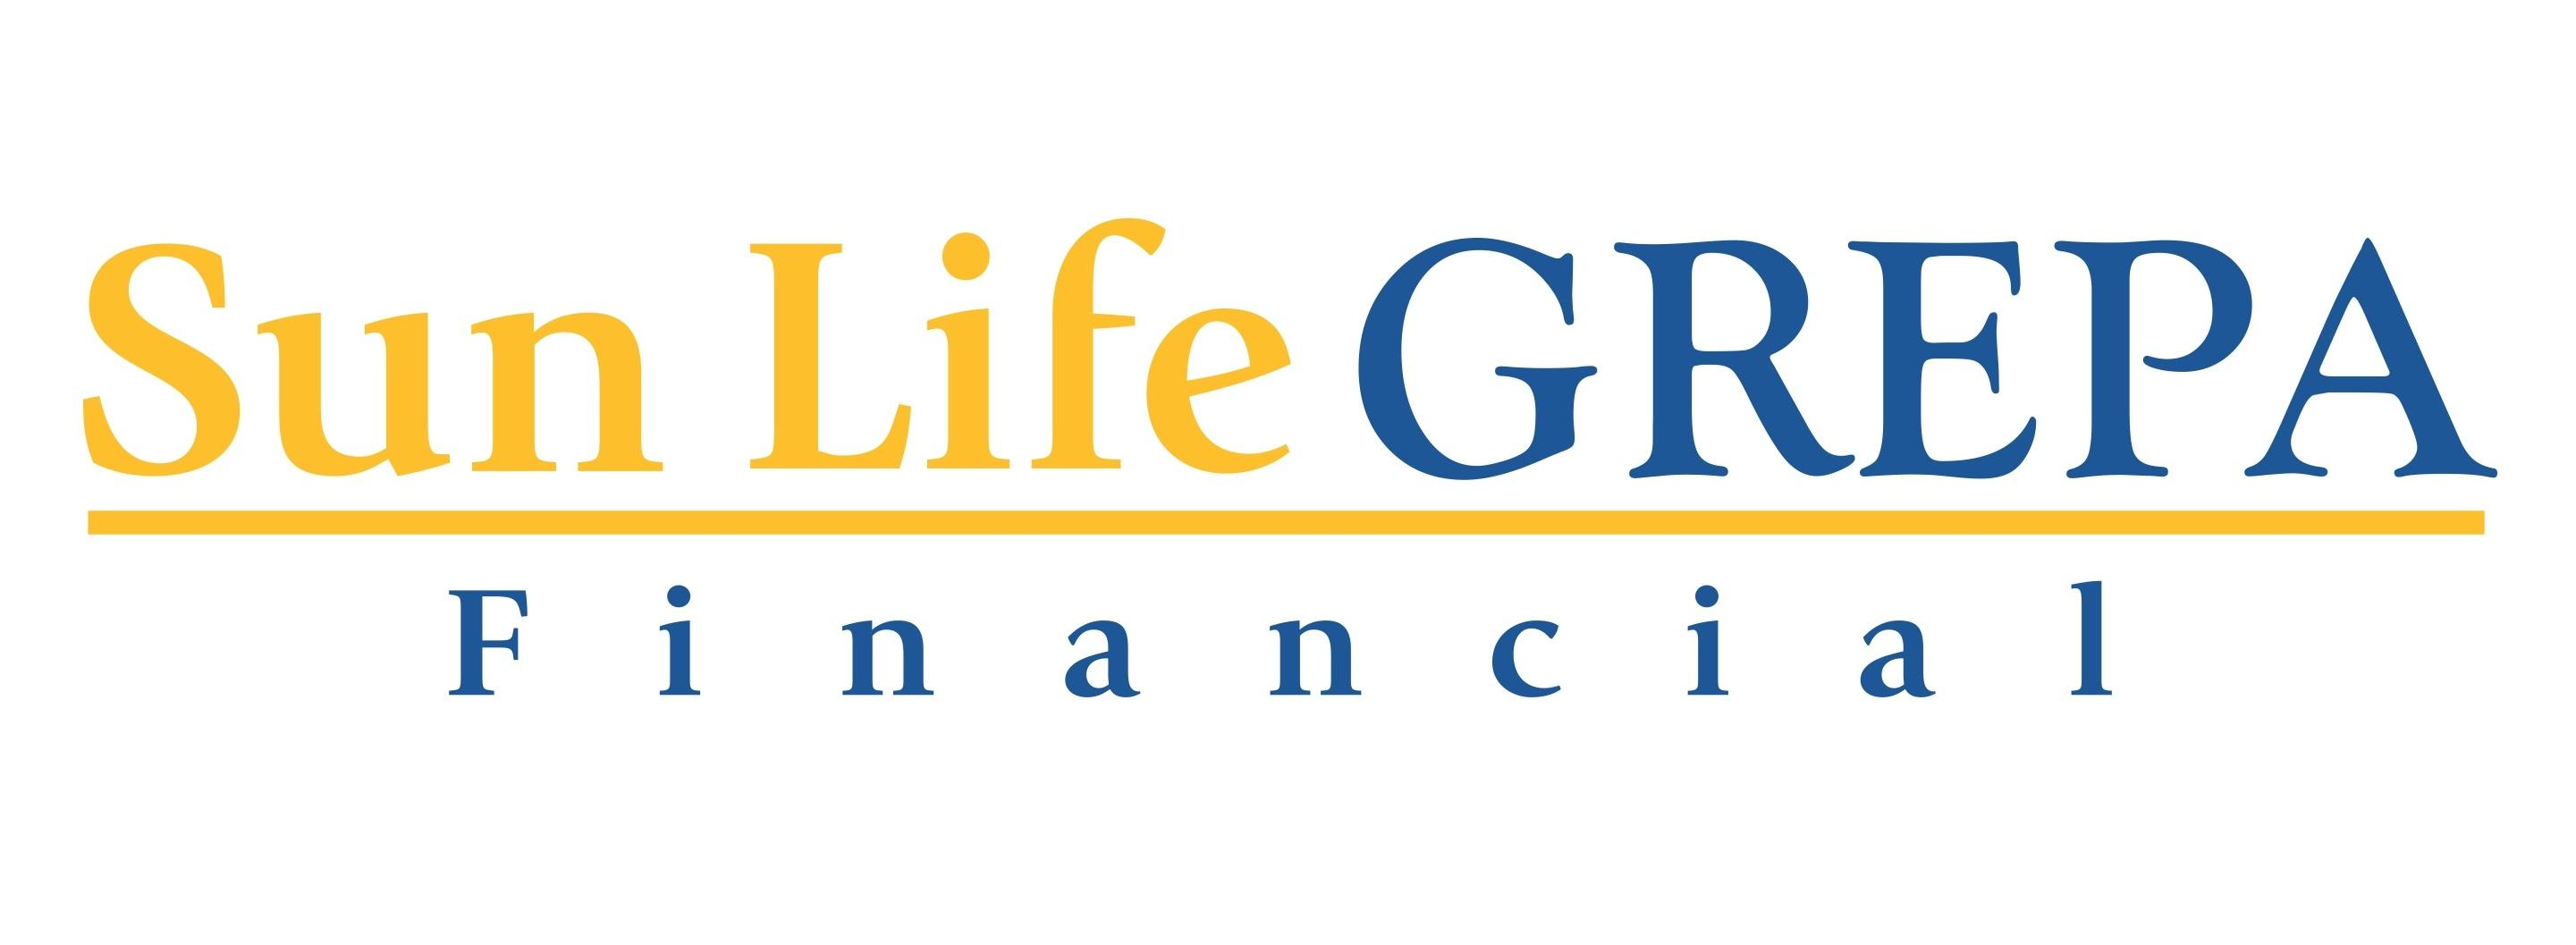 Sun Life Grepa Financial, Inc.